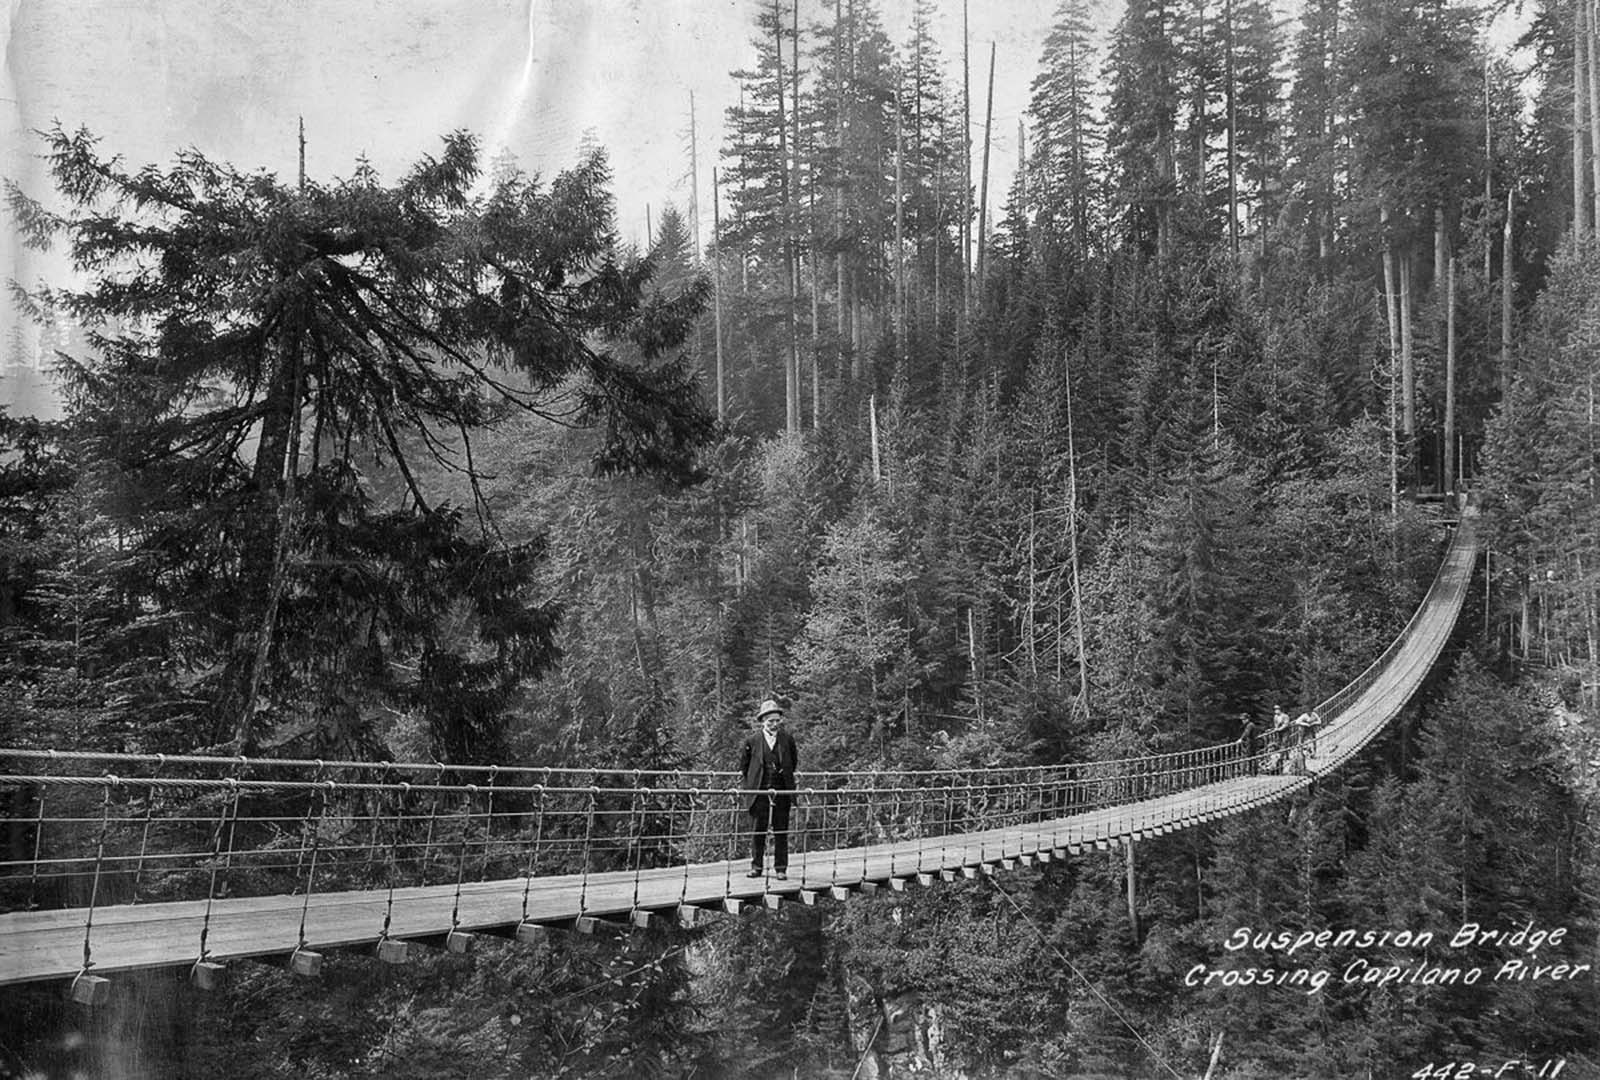 A suspension bridge over the Capilano River. 1919.